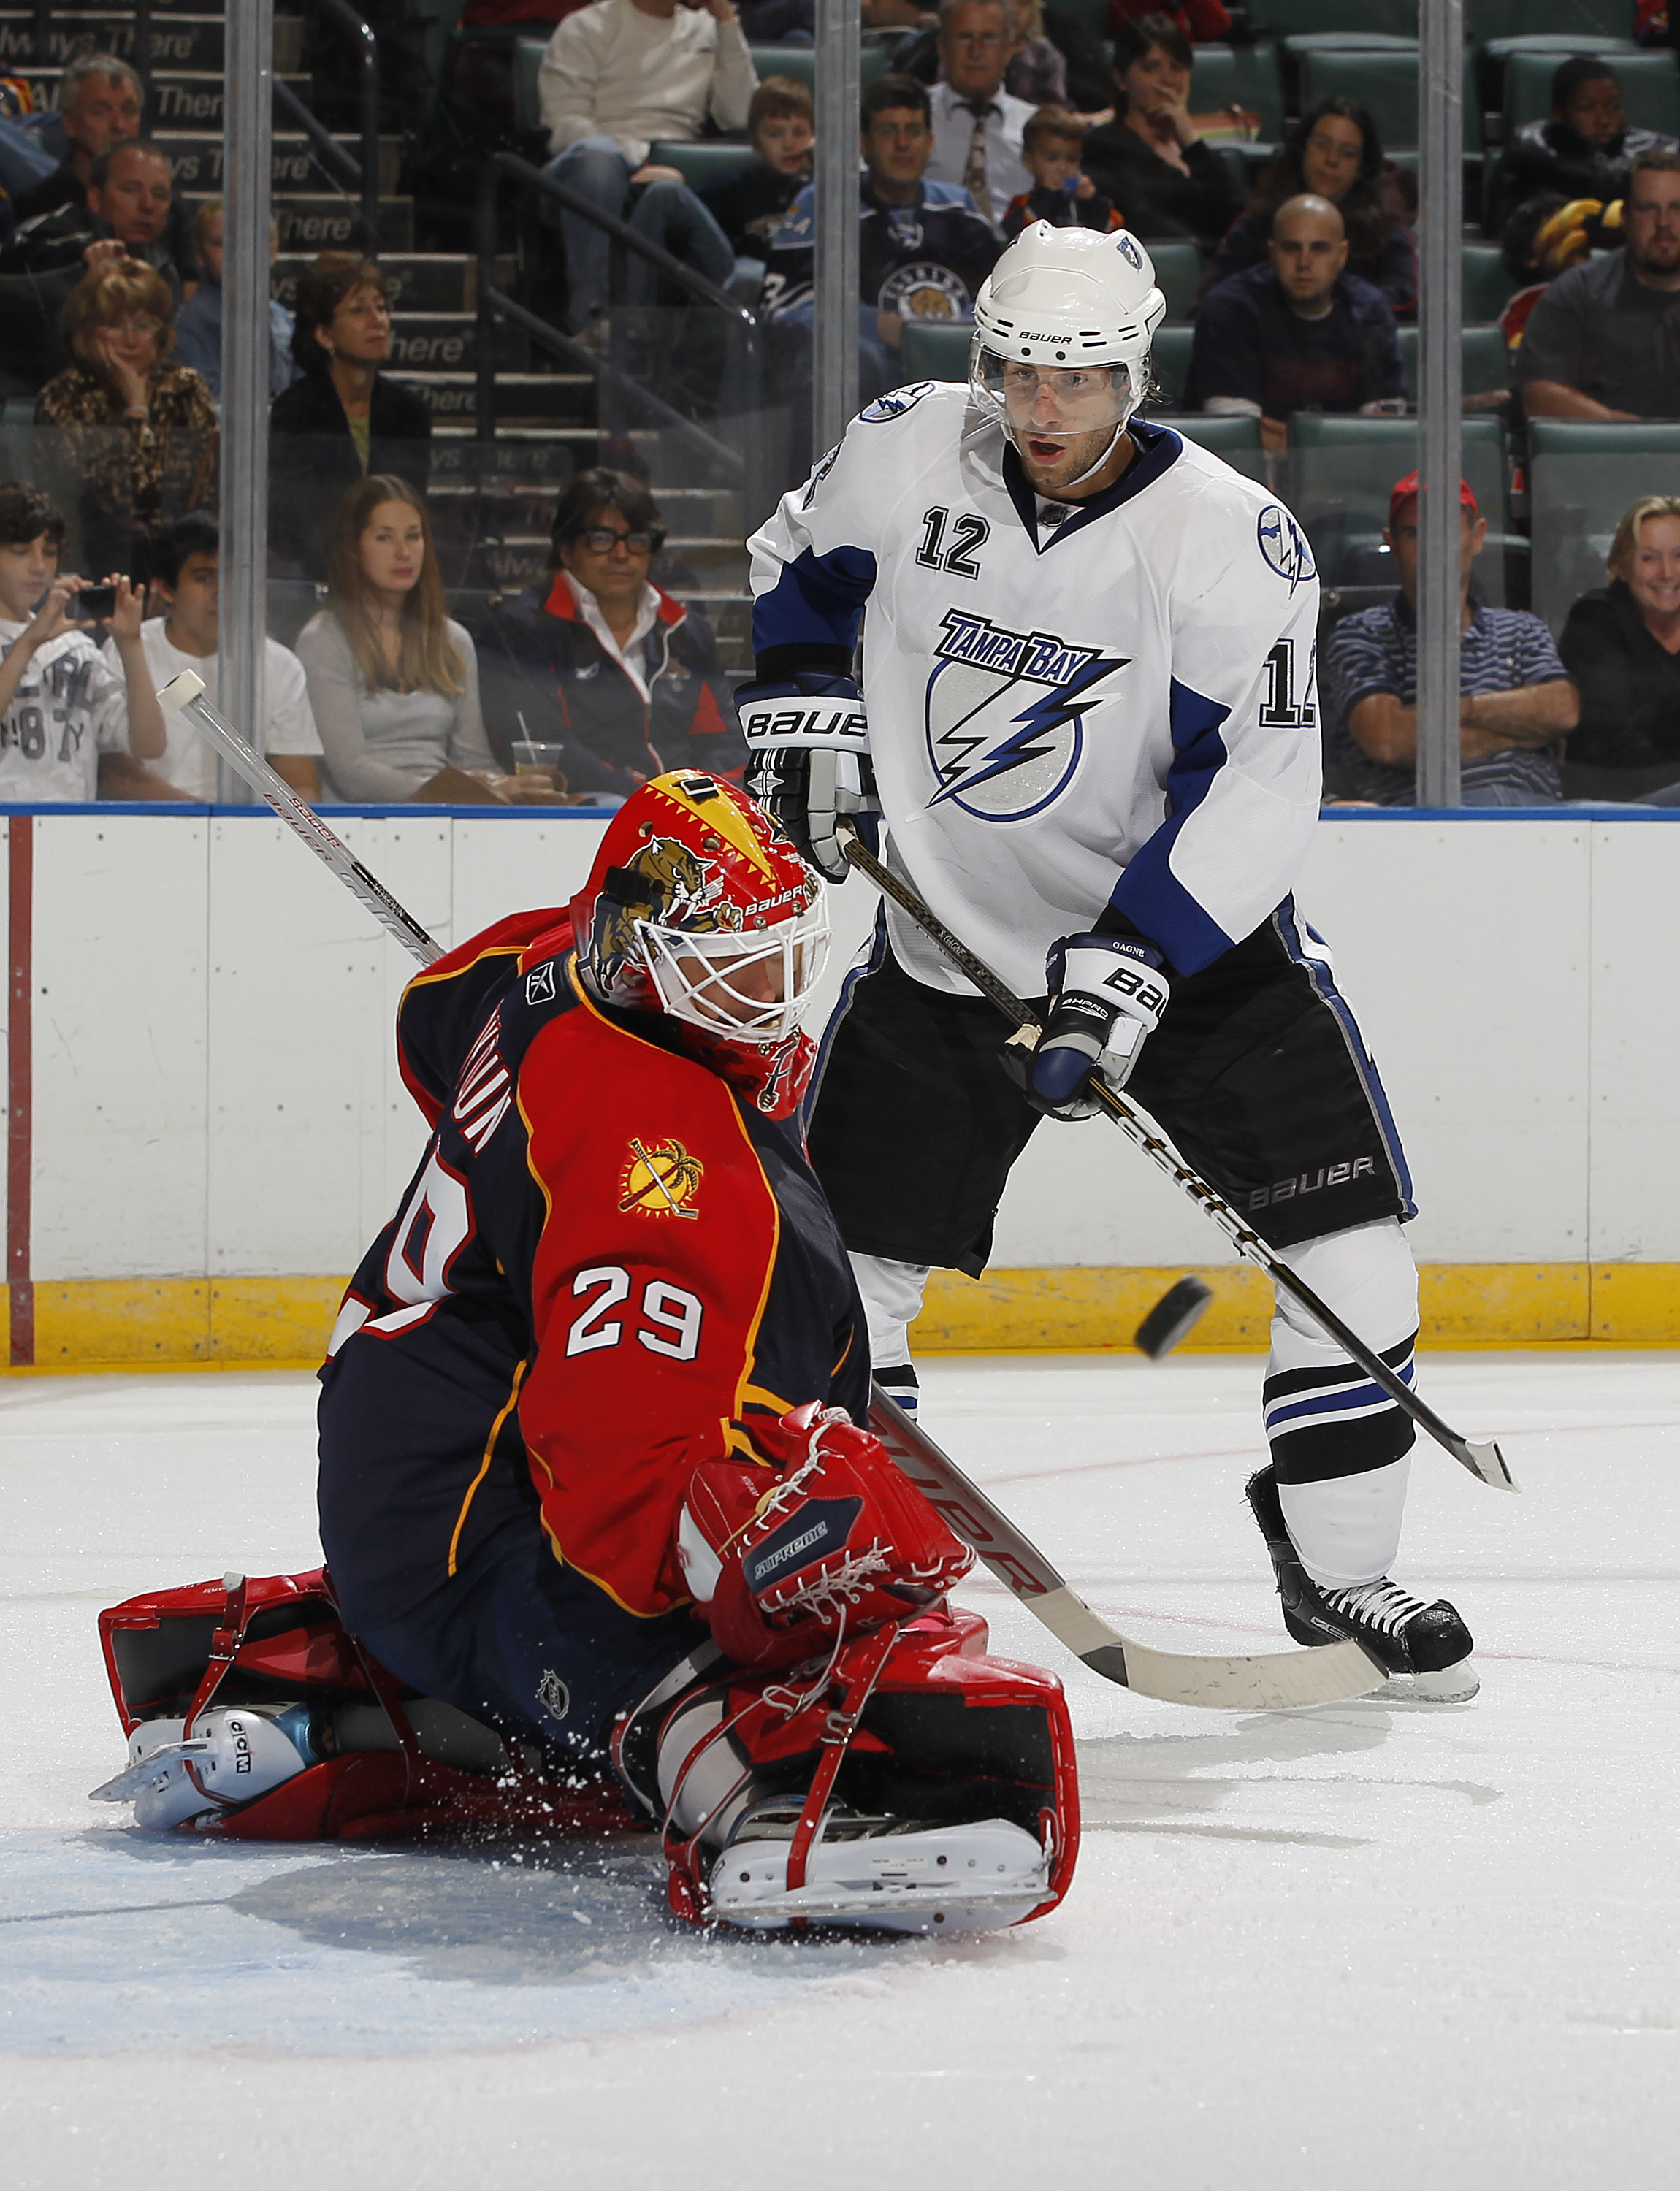 SUNRISE, FL - OCTOBER 1: Goaltender Tomas Vokoun #29 of the Florida Panthers stops a shot from Simon Gagne #12 of the Tampa Bay Lightning during a preseason game on October 1, 2010 at the BankAtlantic Center in Sunrise, Florida. (Photo by Joel Auerbach/Ge